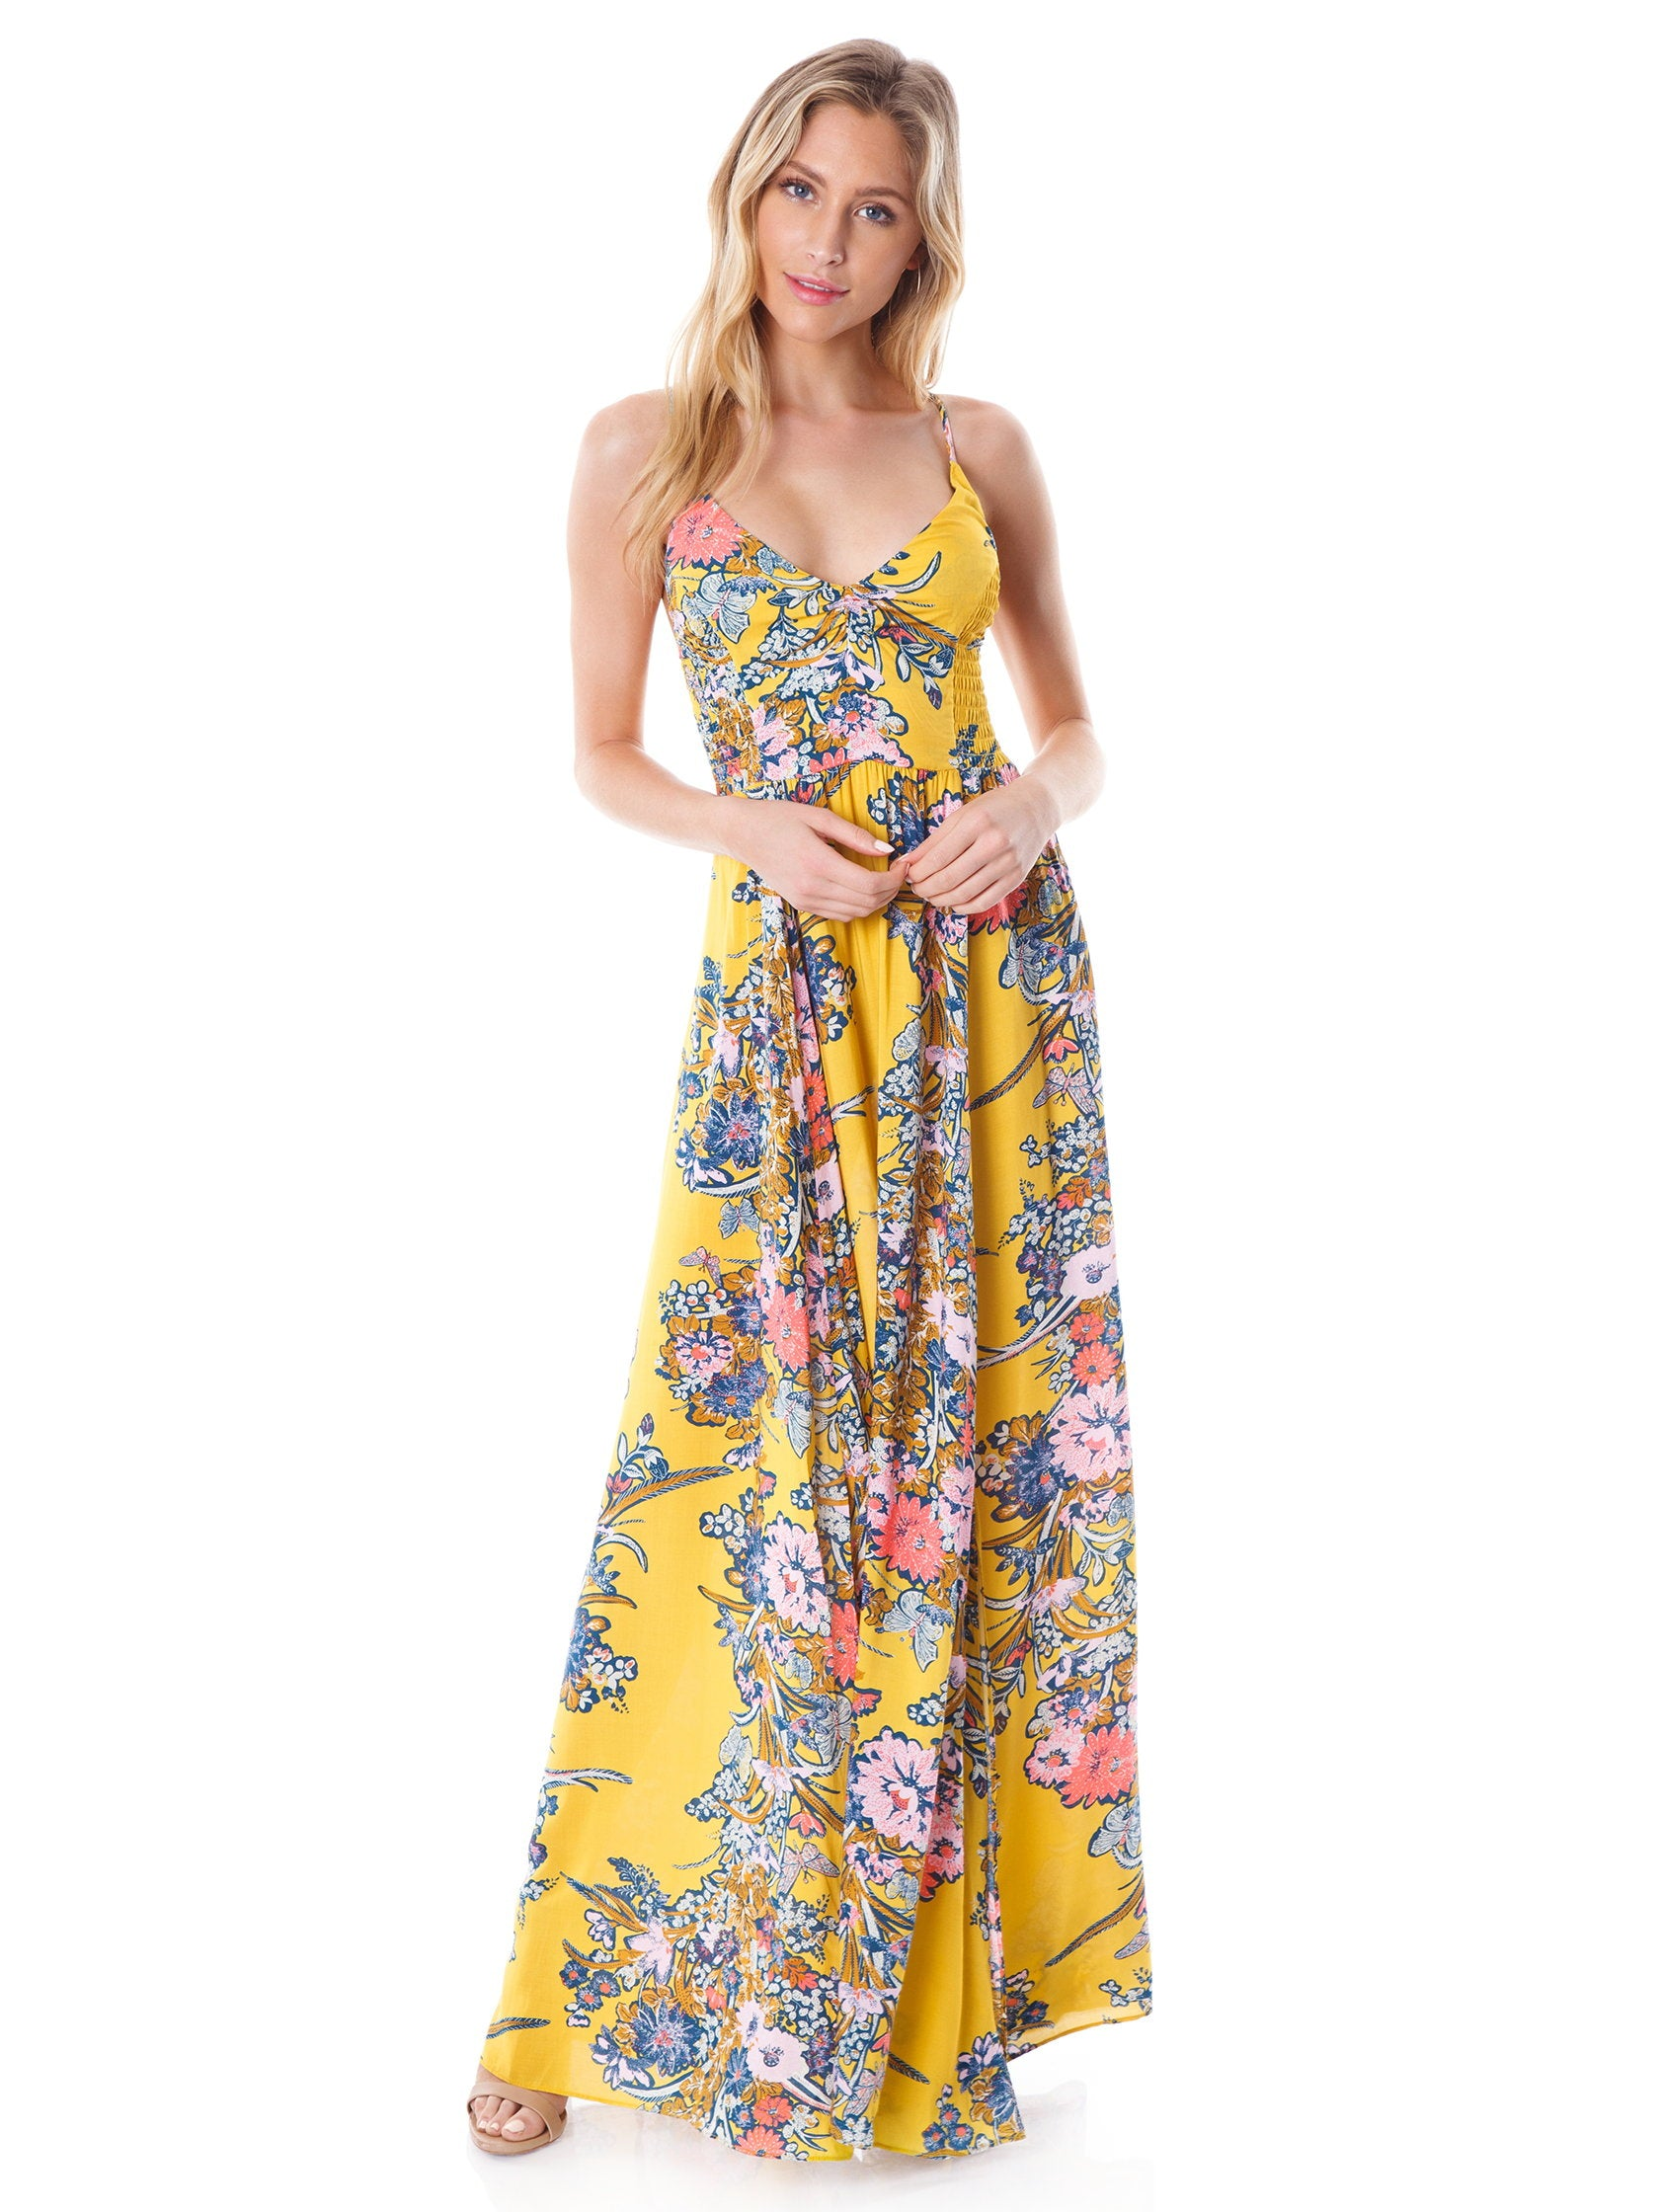 62bc0d86bd3e Girl outfit in a dress rental from Free People called Through The Vine  Printed Maxi Dress